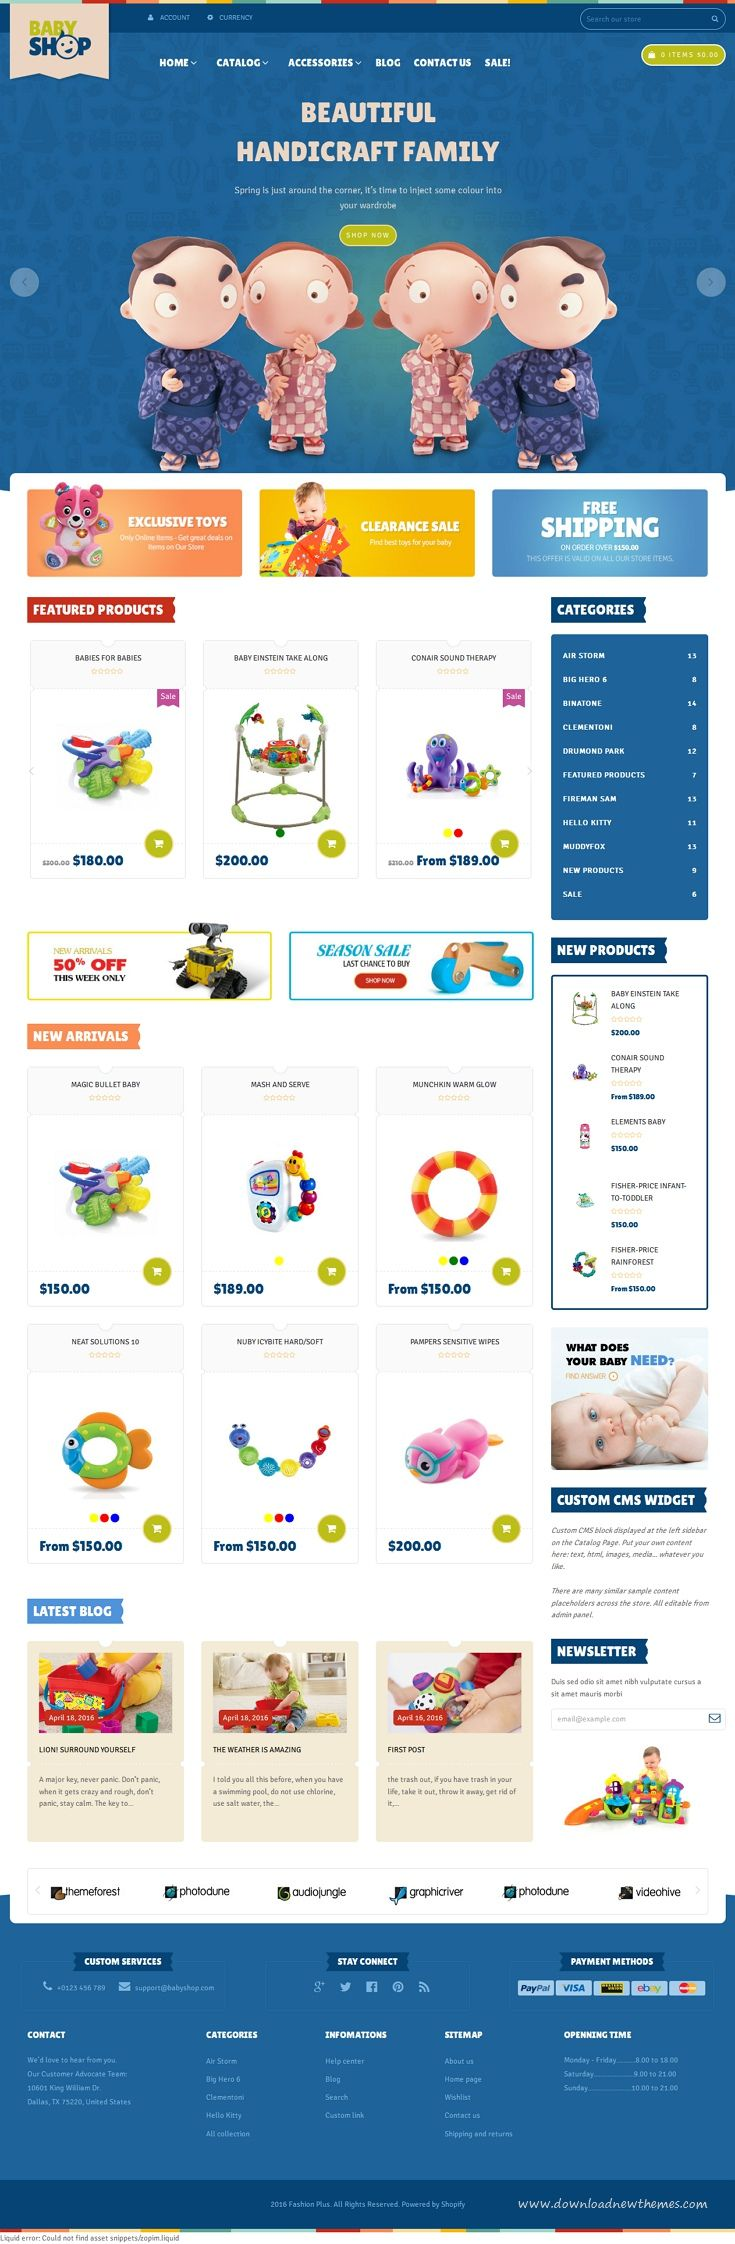 Babyshop Responsive Shopify Theme has a very simple design that is very popular with online Baby shop, handmade, gift retailer etc.With 3 theme colors and Great slideshow, nice banners making your site more beautiful.